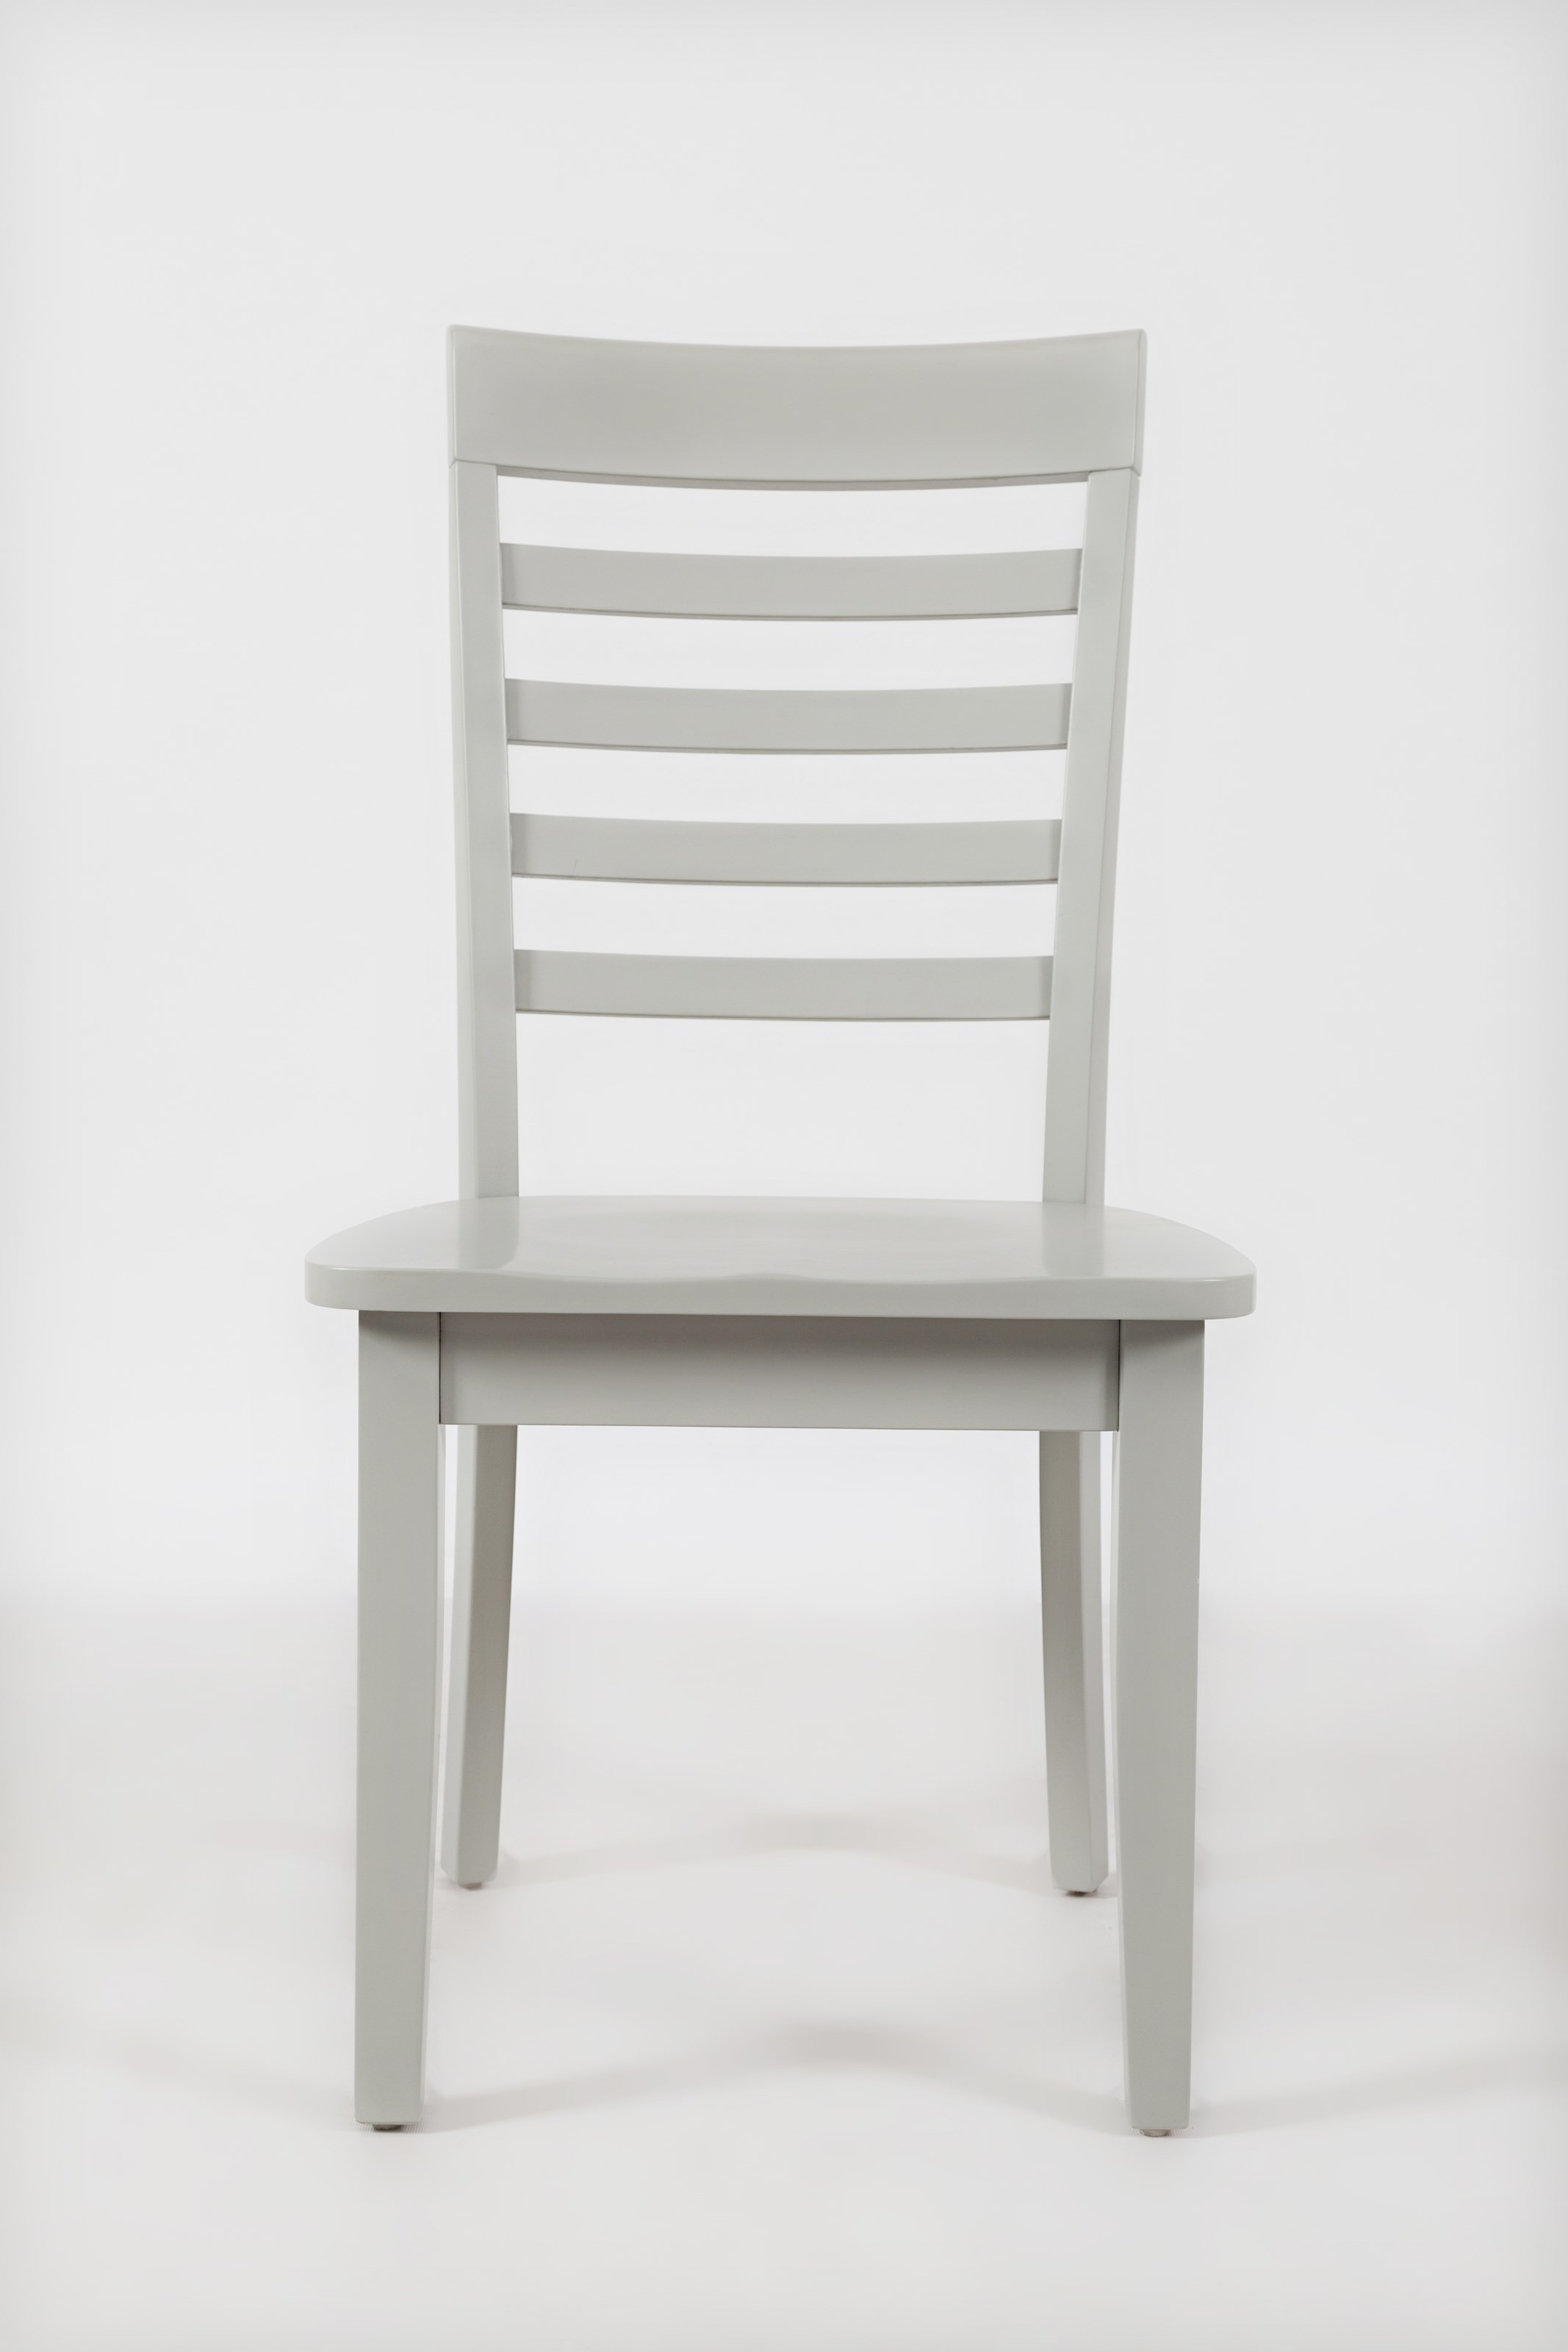 Everyday Classics Ladder Back Dining Chair by Jofran at HomeWorld Furniture